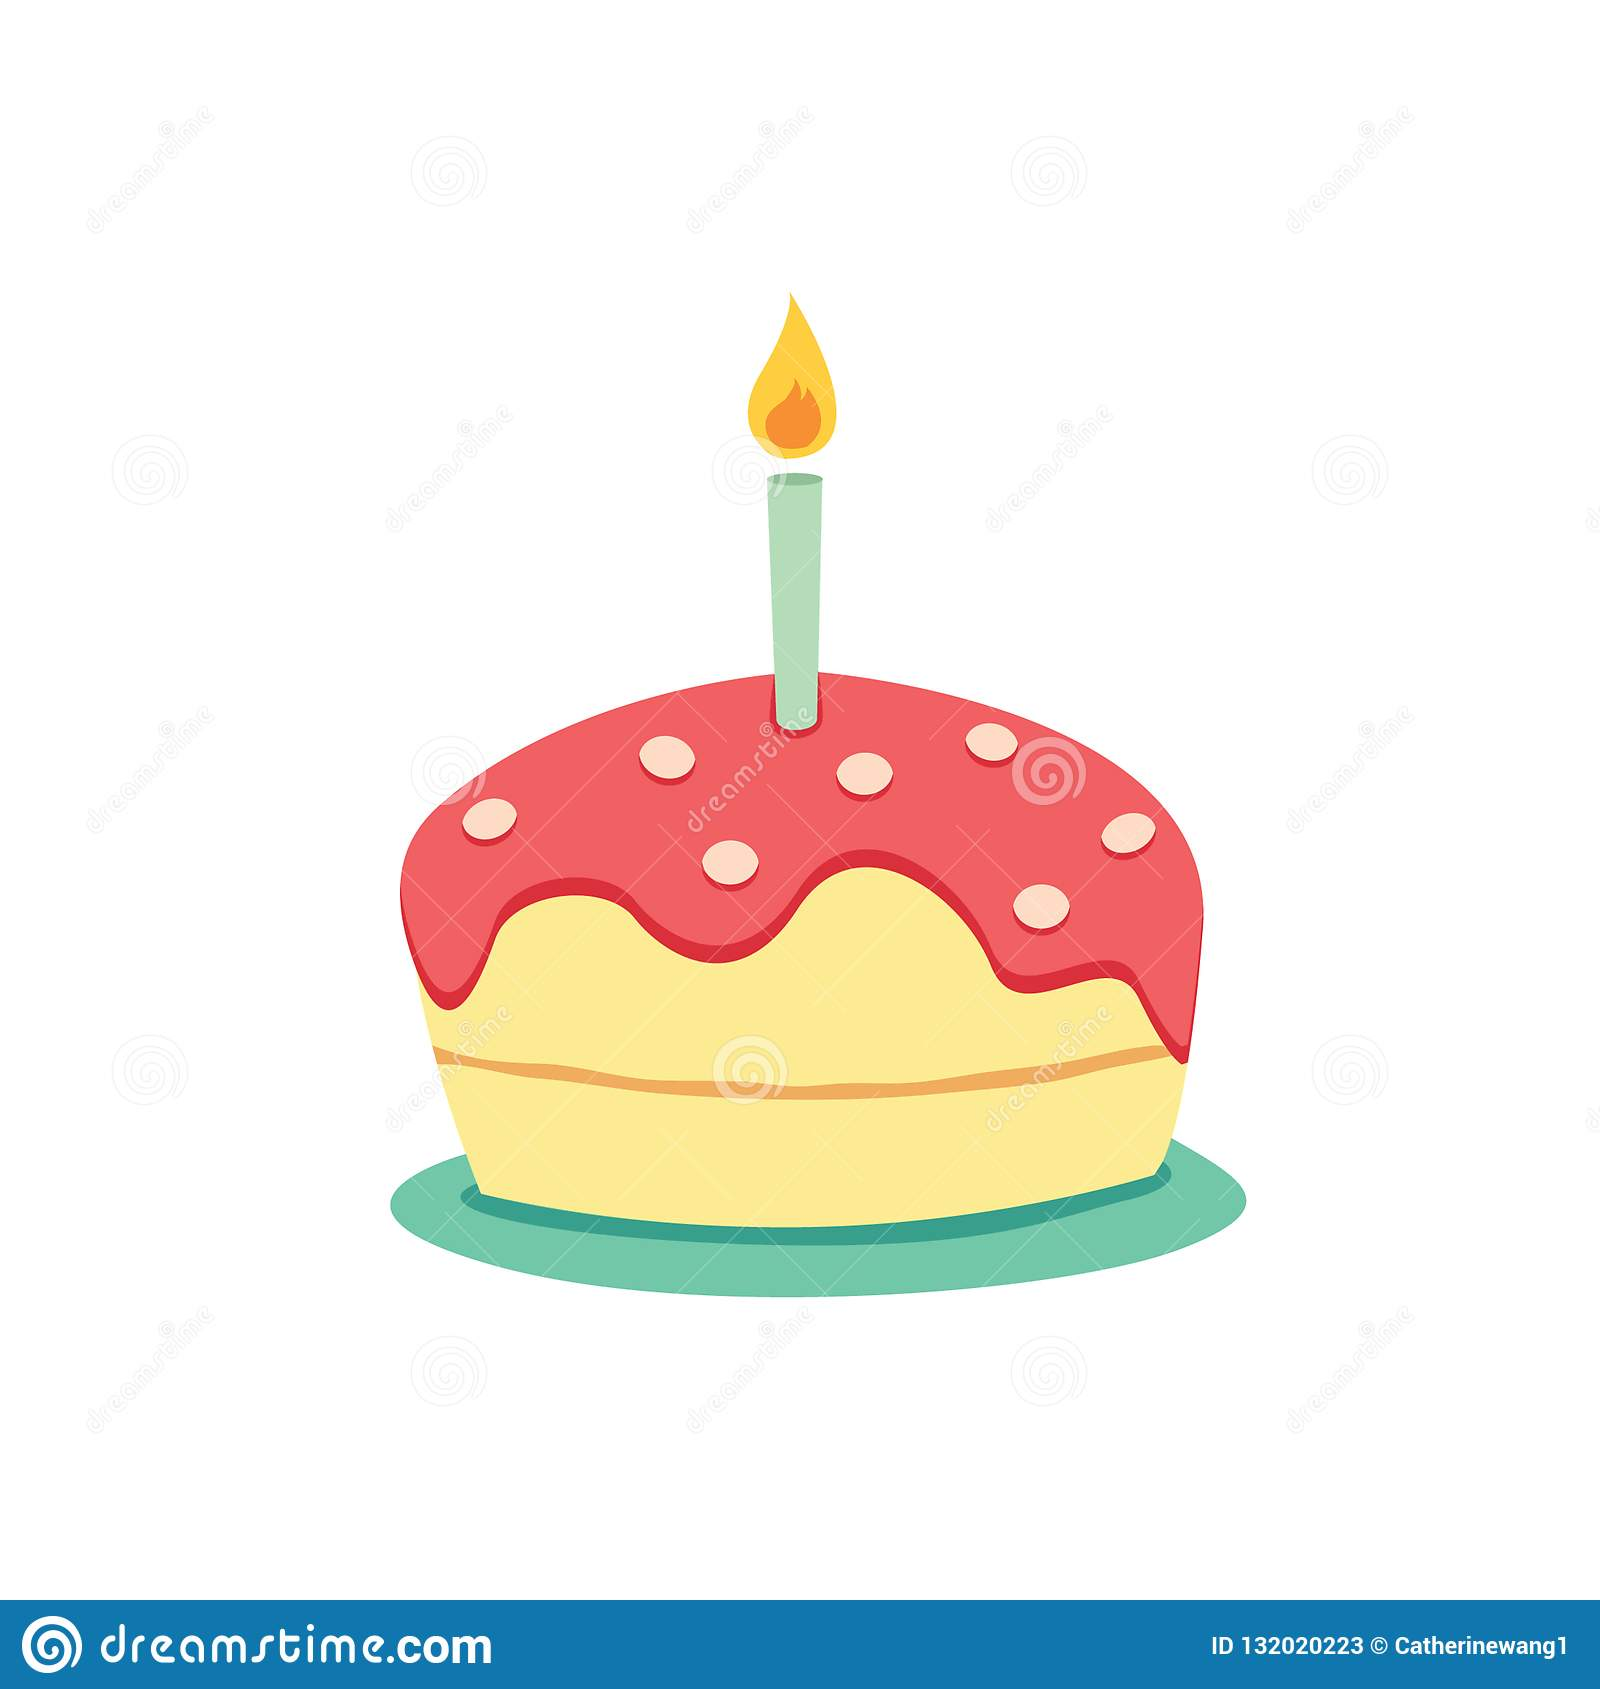 Wondrous Simple Birthday Cake With Candle Vector Stock Vector Funny Birthday Cards Online Alyptdamsfinfo